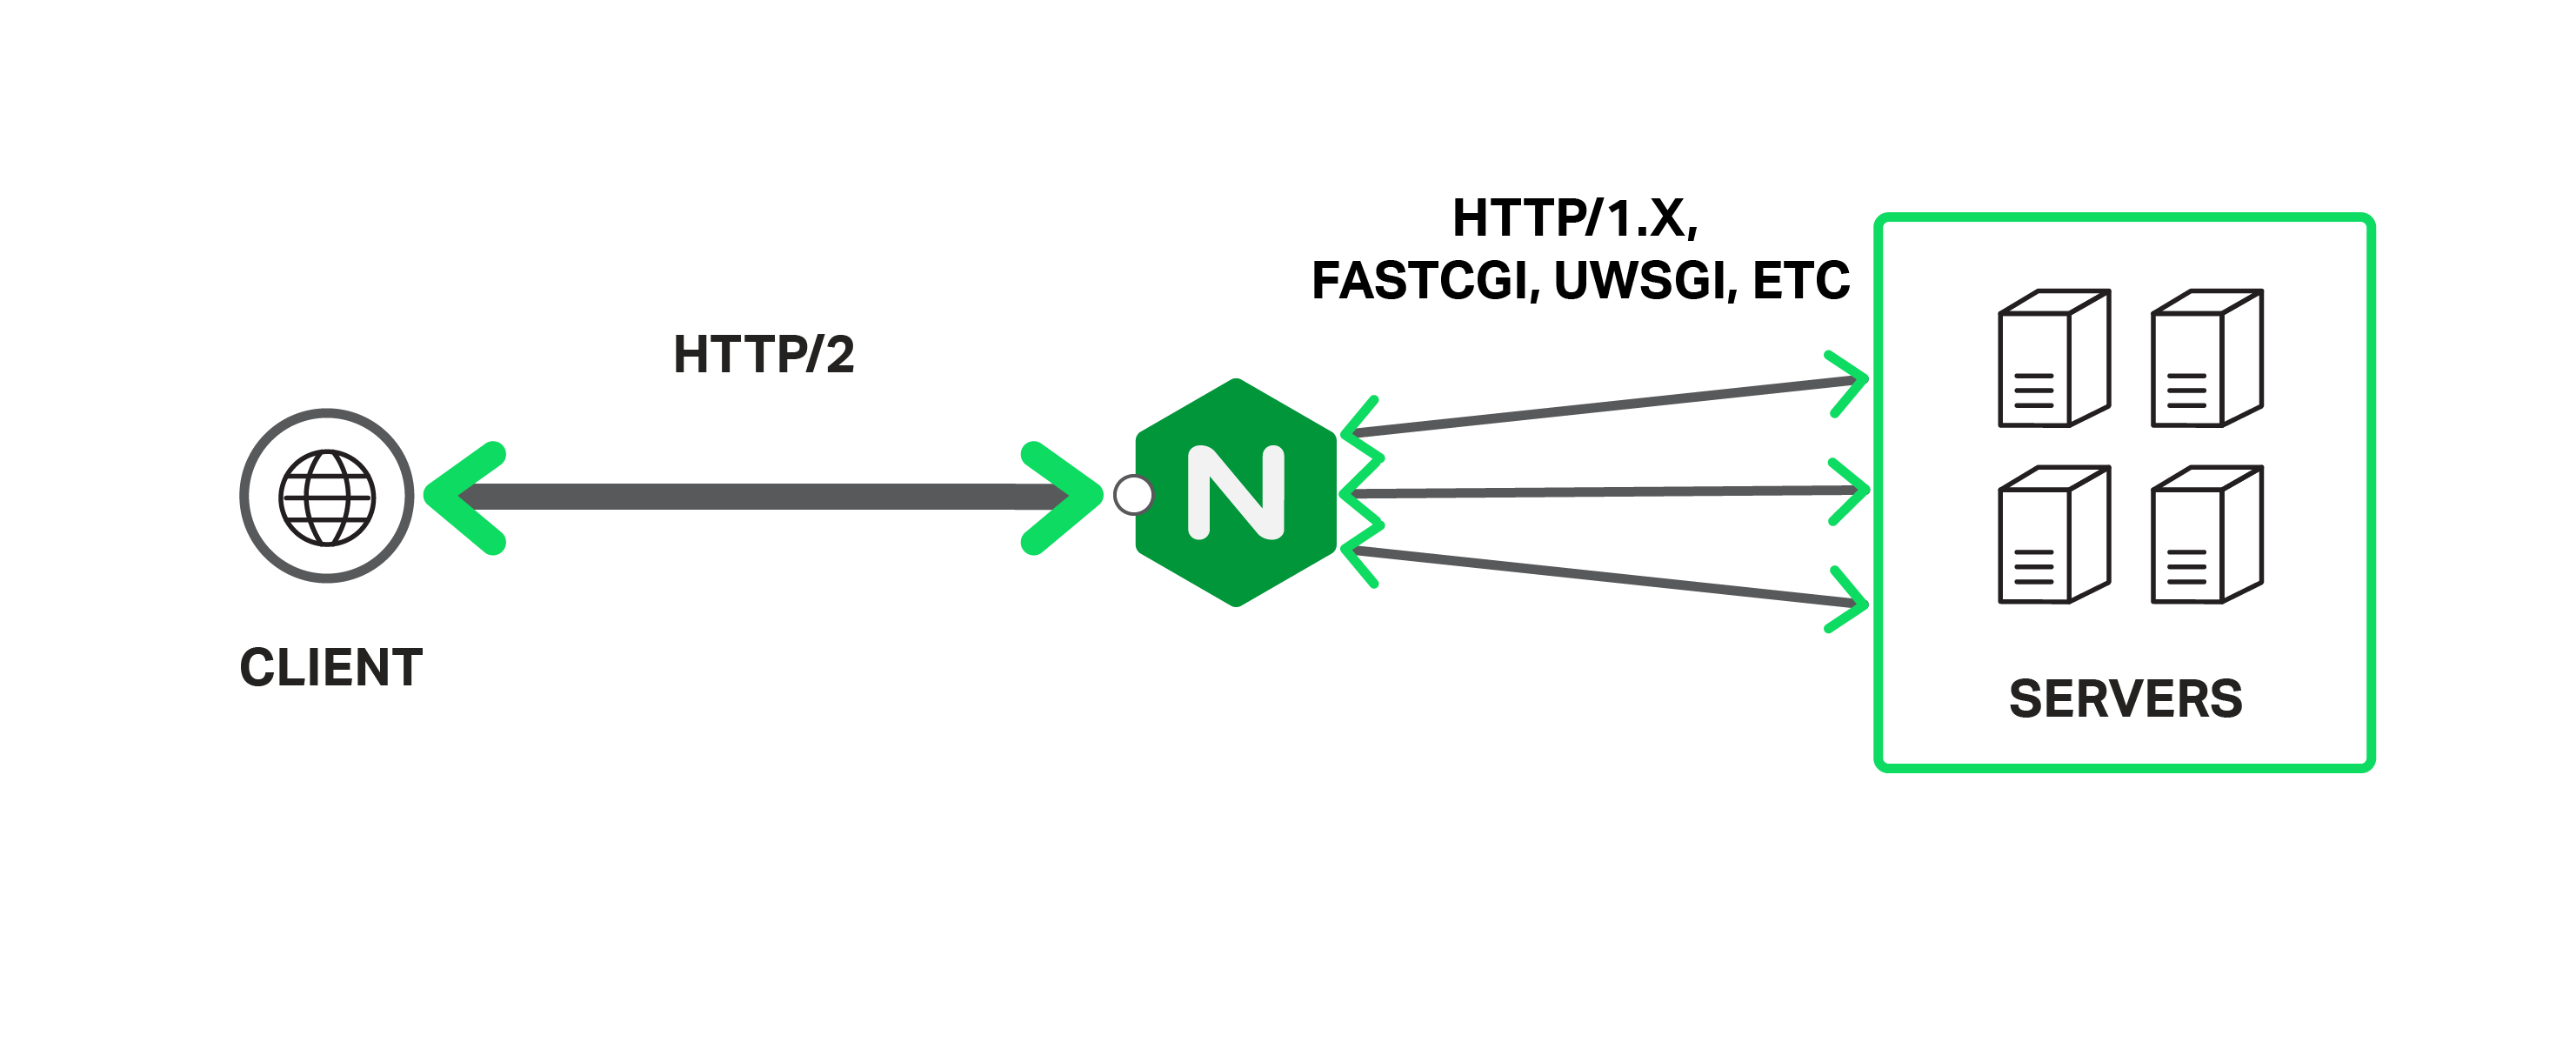 10 Tips To Improve Application Performance Nginx Diagram Of Web Browser Requesting A Page From Server Supports Spdy And Http 2 For Increased